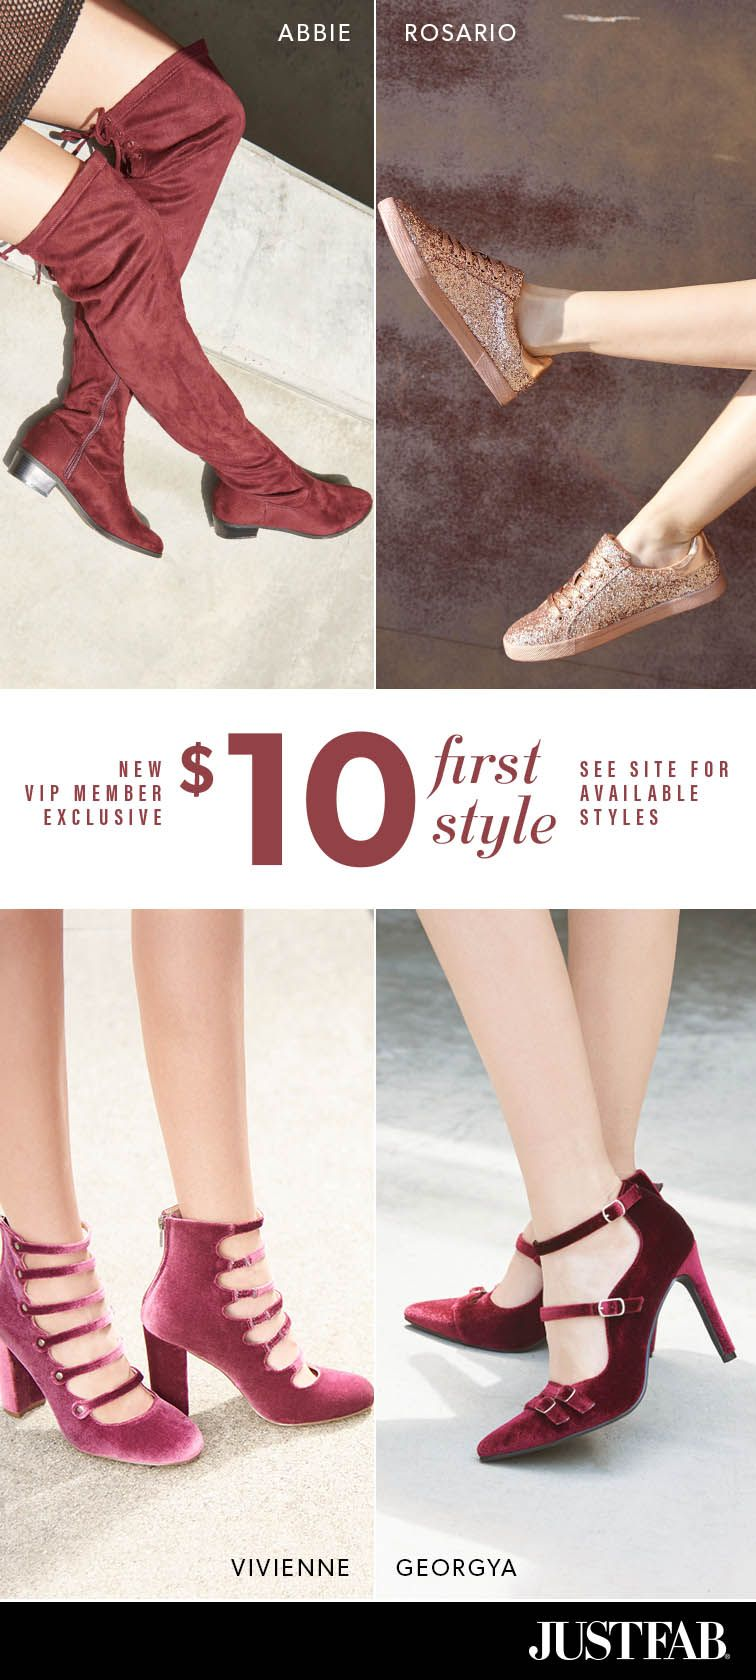 72da6930216 Fall Styles Are IN - Get Your First Style for Only  10! Take the 60 Second  Style Quiz to get this exclusive offer!